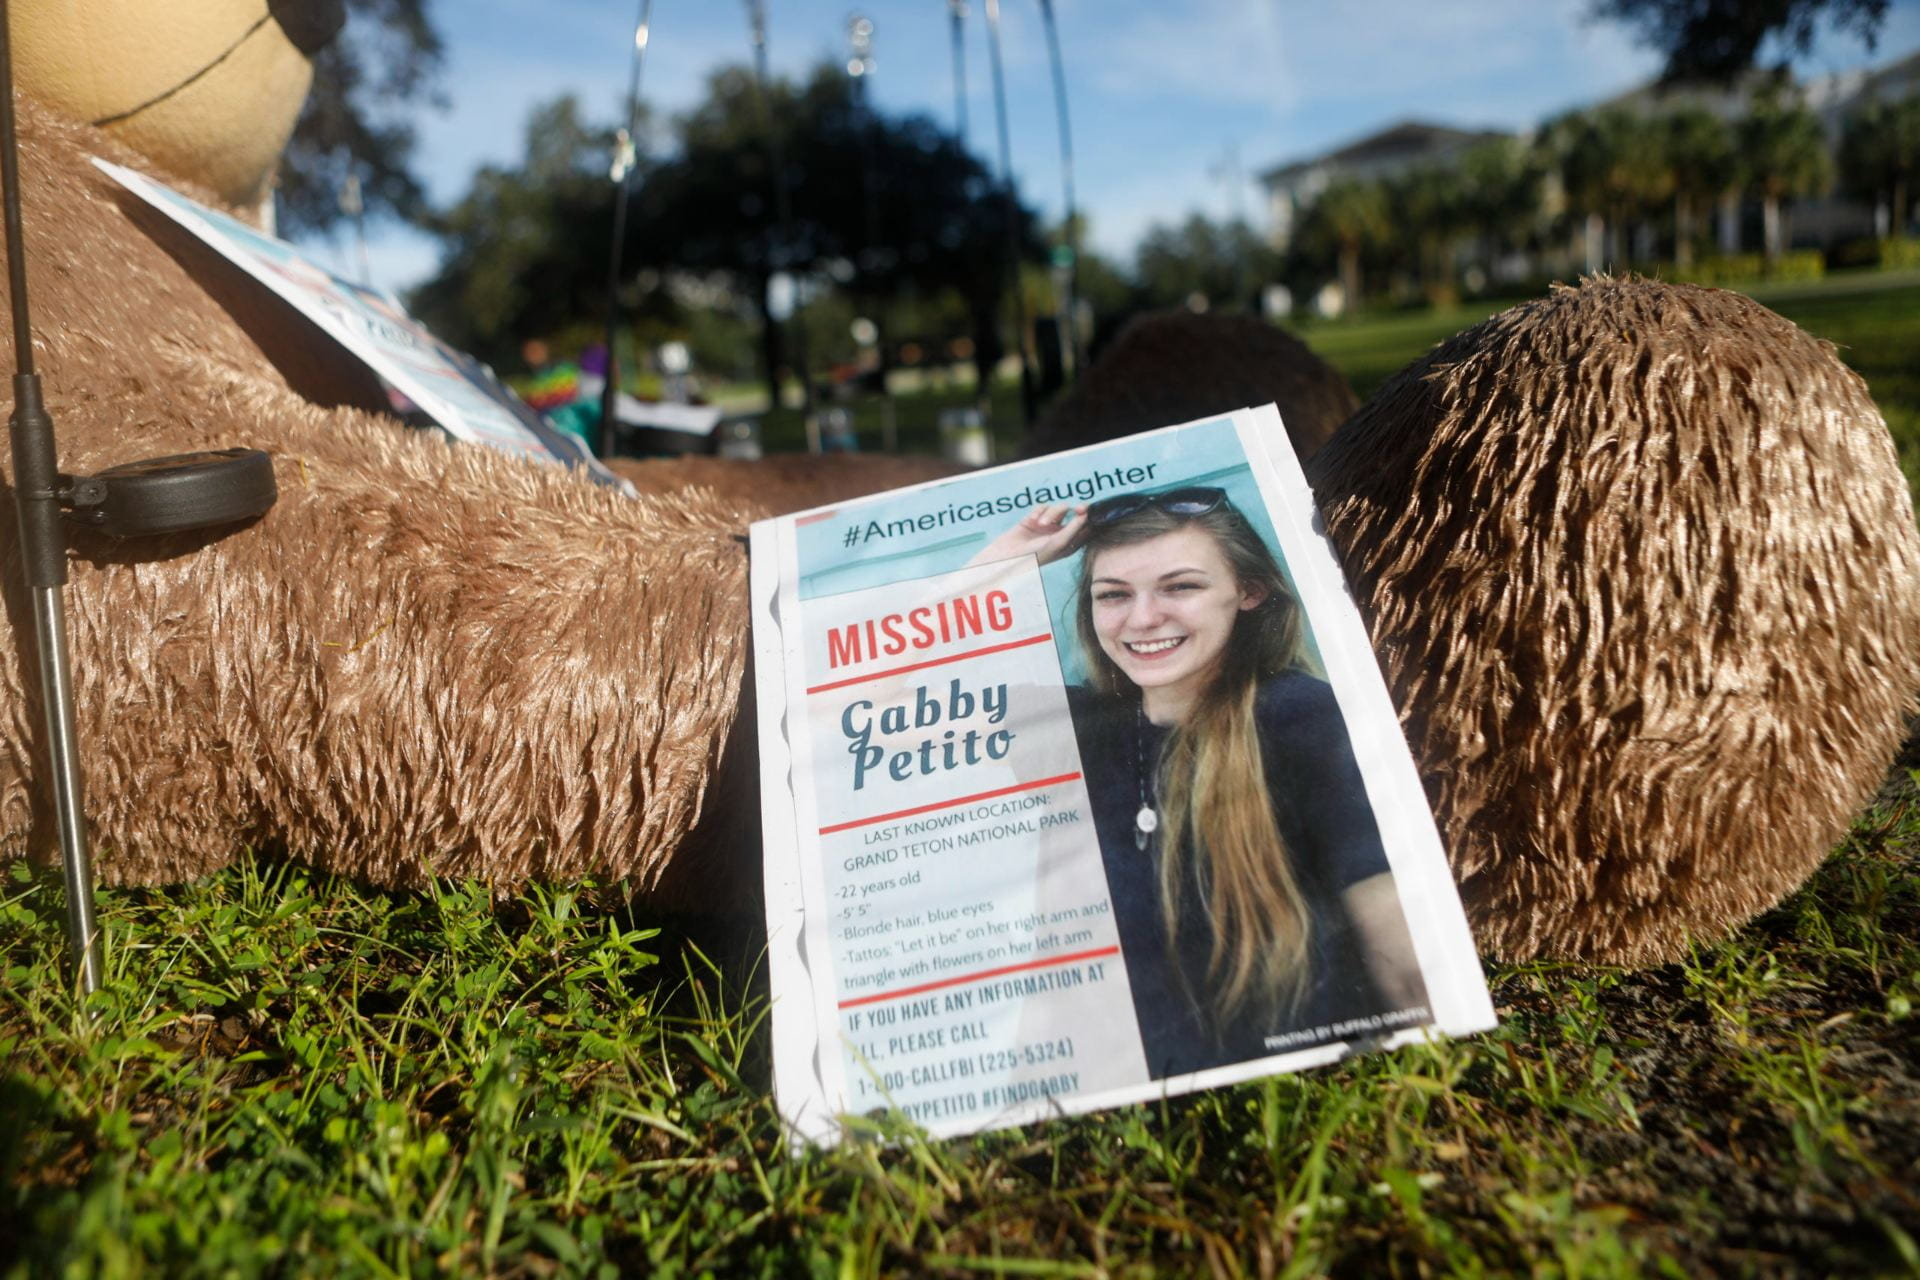 Missing flyer of Gabby Petito depicting a picture of Gabby with the hashtag of America's daughter